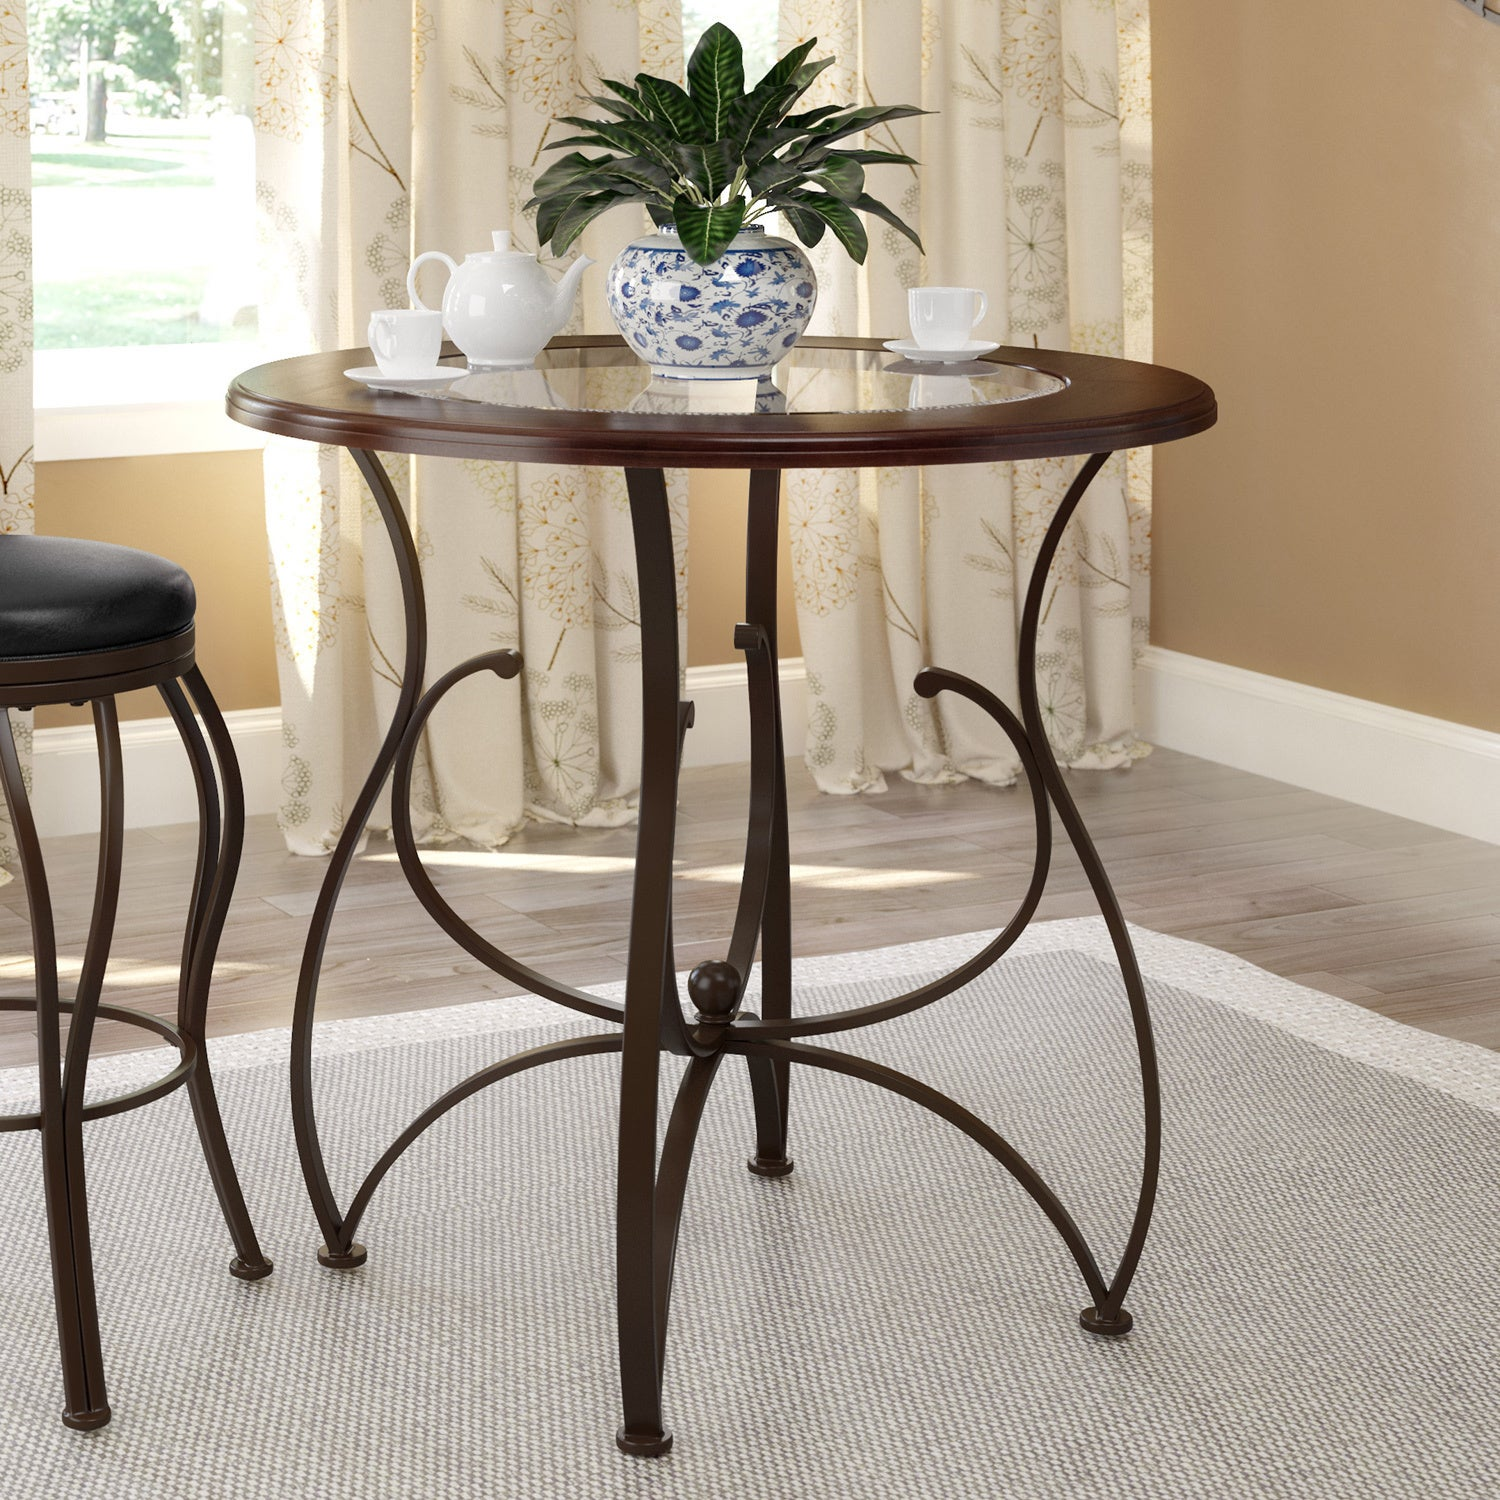 Shop CorLiving Warm Stained Wood And Glass Counter Height Dining Table    Brown   Free Shipping Today   Overstock.com   11007158